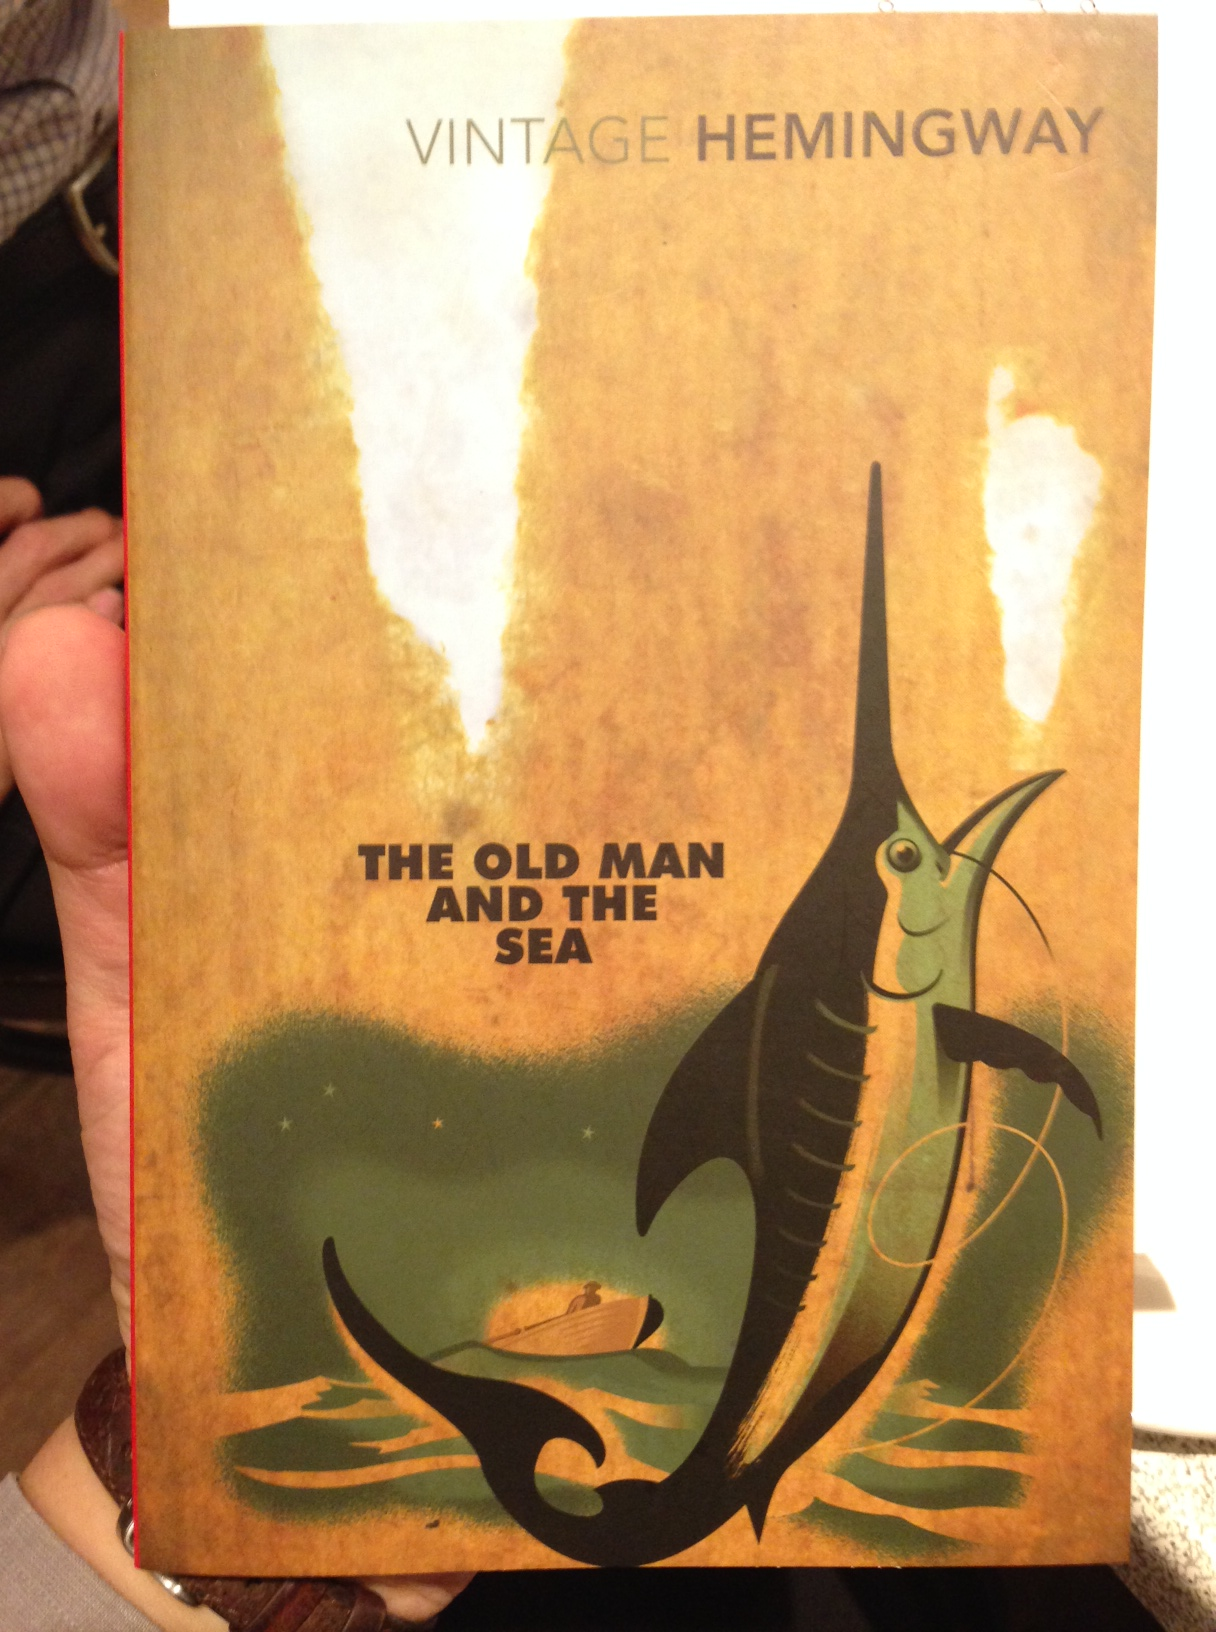 a review of old man and the sea The pearl is somewhat of a departure from john steinbeck's earlier works and has been compared to hemingway's the old man and the sea here's a review.